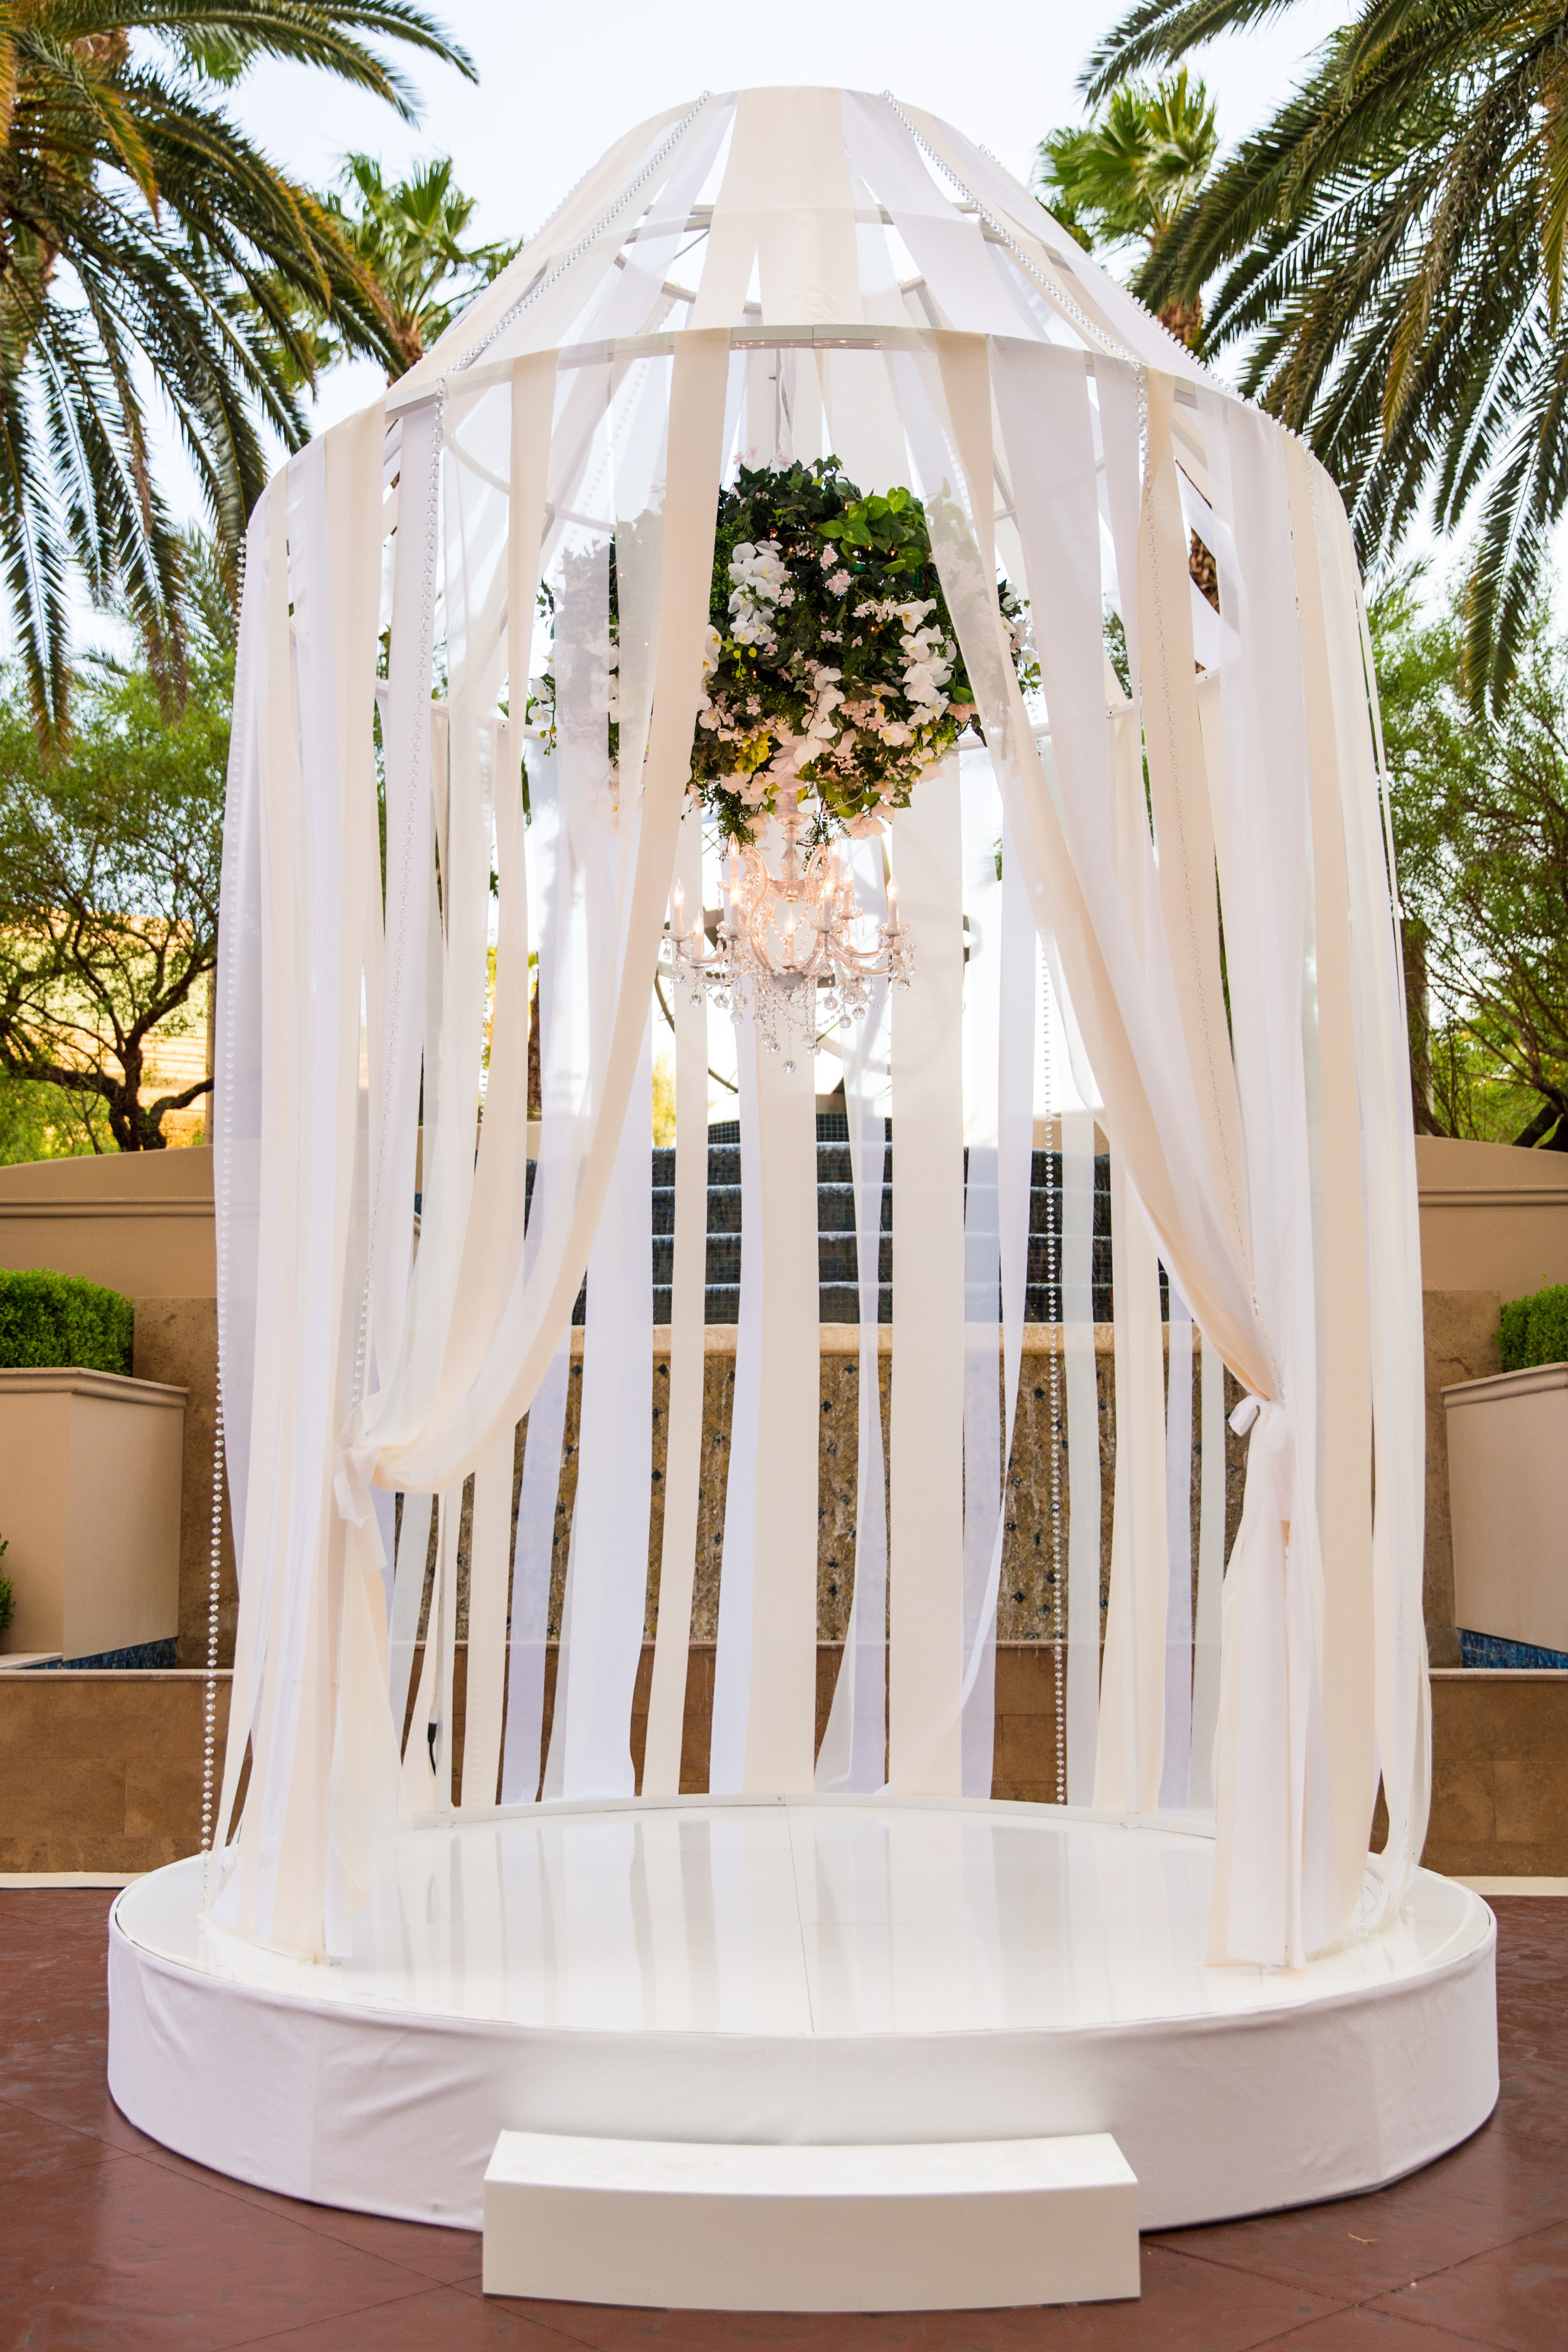 The wedding ceremony took place in a larger than life birdcage wrapped in ribbon with a floral chandelier hanging in the center.Wedding Planning by  Andrea Eppolito Events  · Photography by  Shandro Photo   · Wedding Venue  Four Seasons Las Vegas  · Floral and Decor by  Destination by Design  · Chandeliers and Lighting by  LED Unplugged